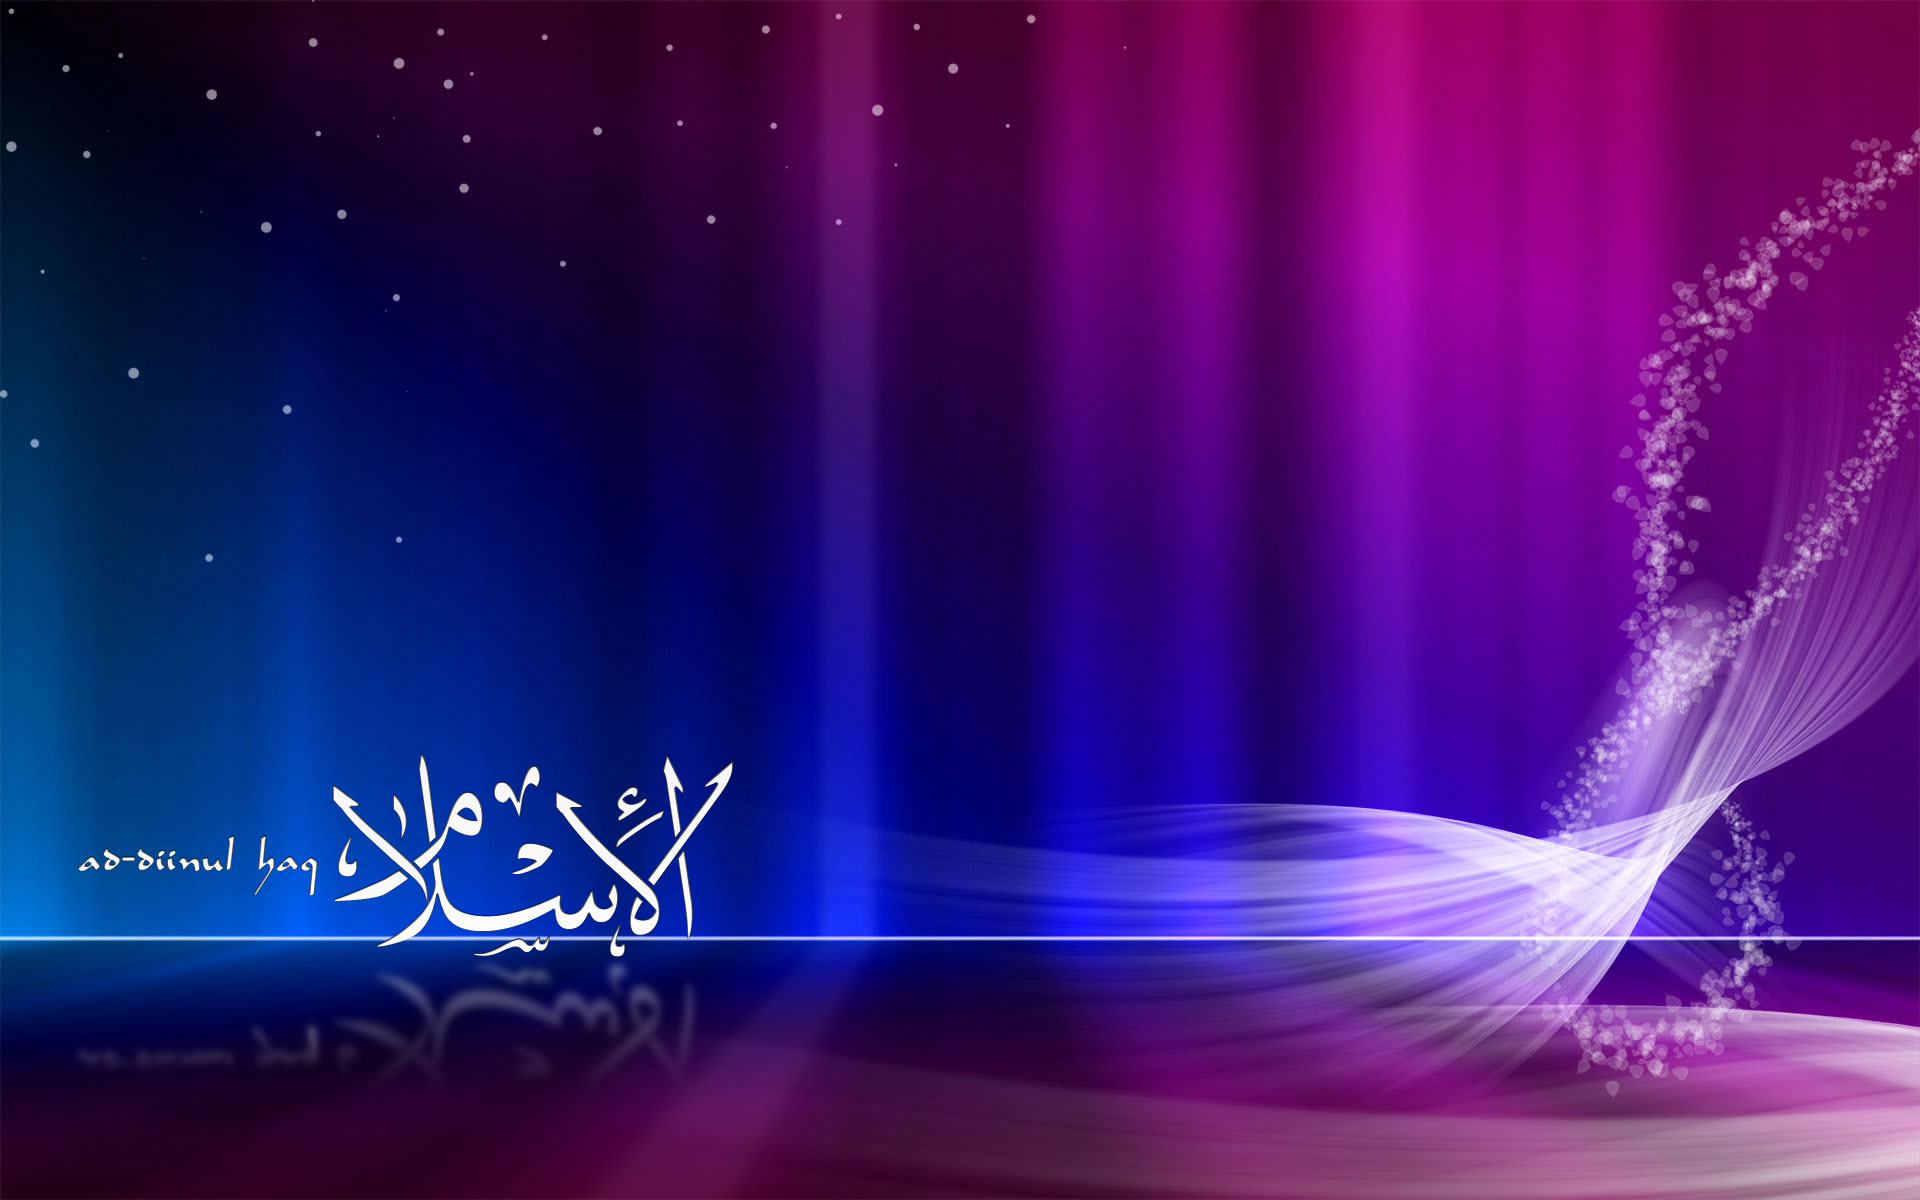 Islamic Wallpaper HD 1920x1200